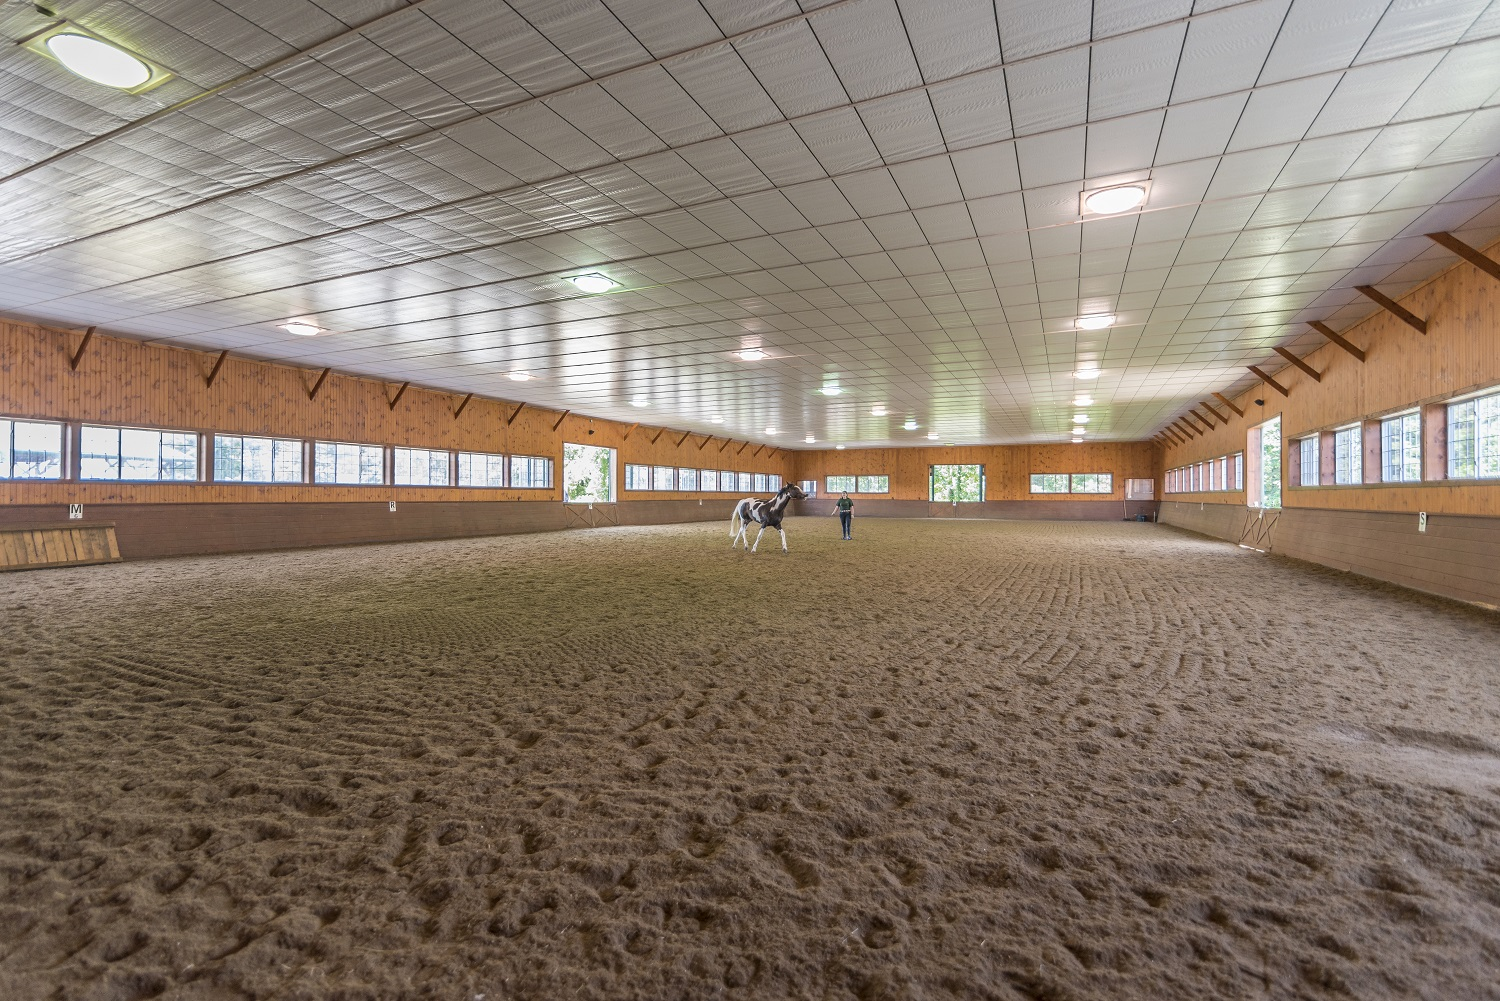 attached to the barn is a 80 x 160 foot indoor arena.  The footing is made from playground sand, eurofelt, and oil which reduces dust and absorbs impact